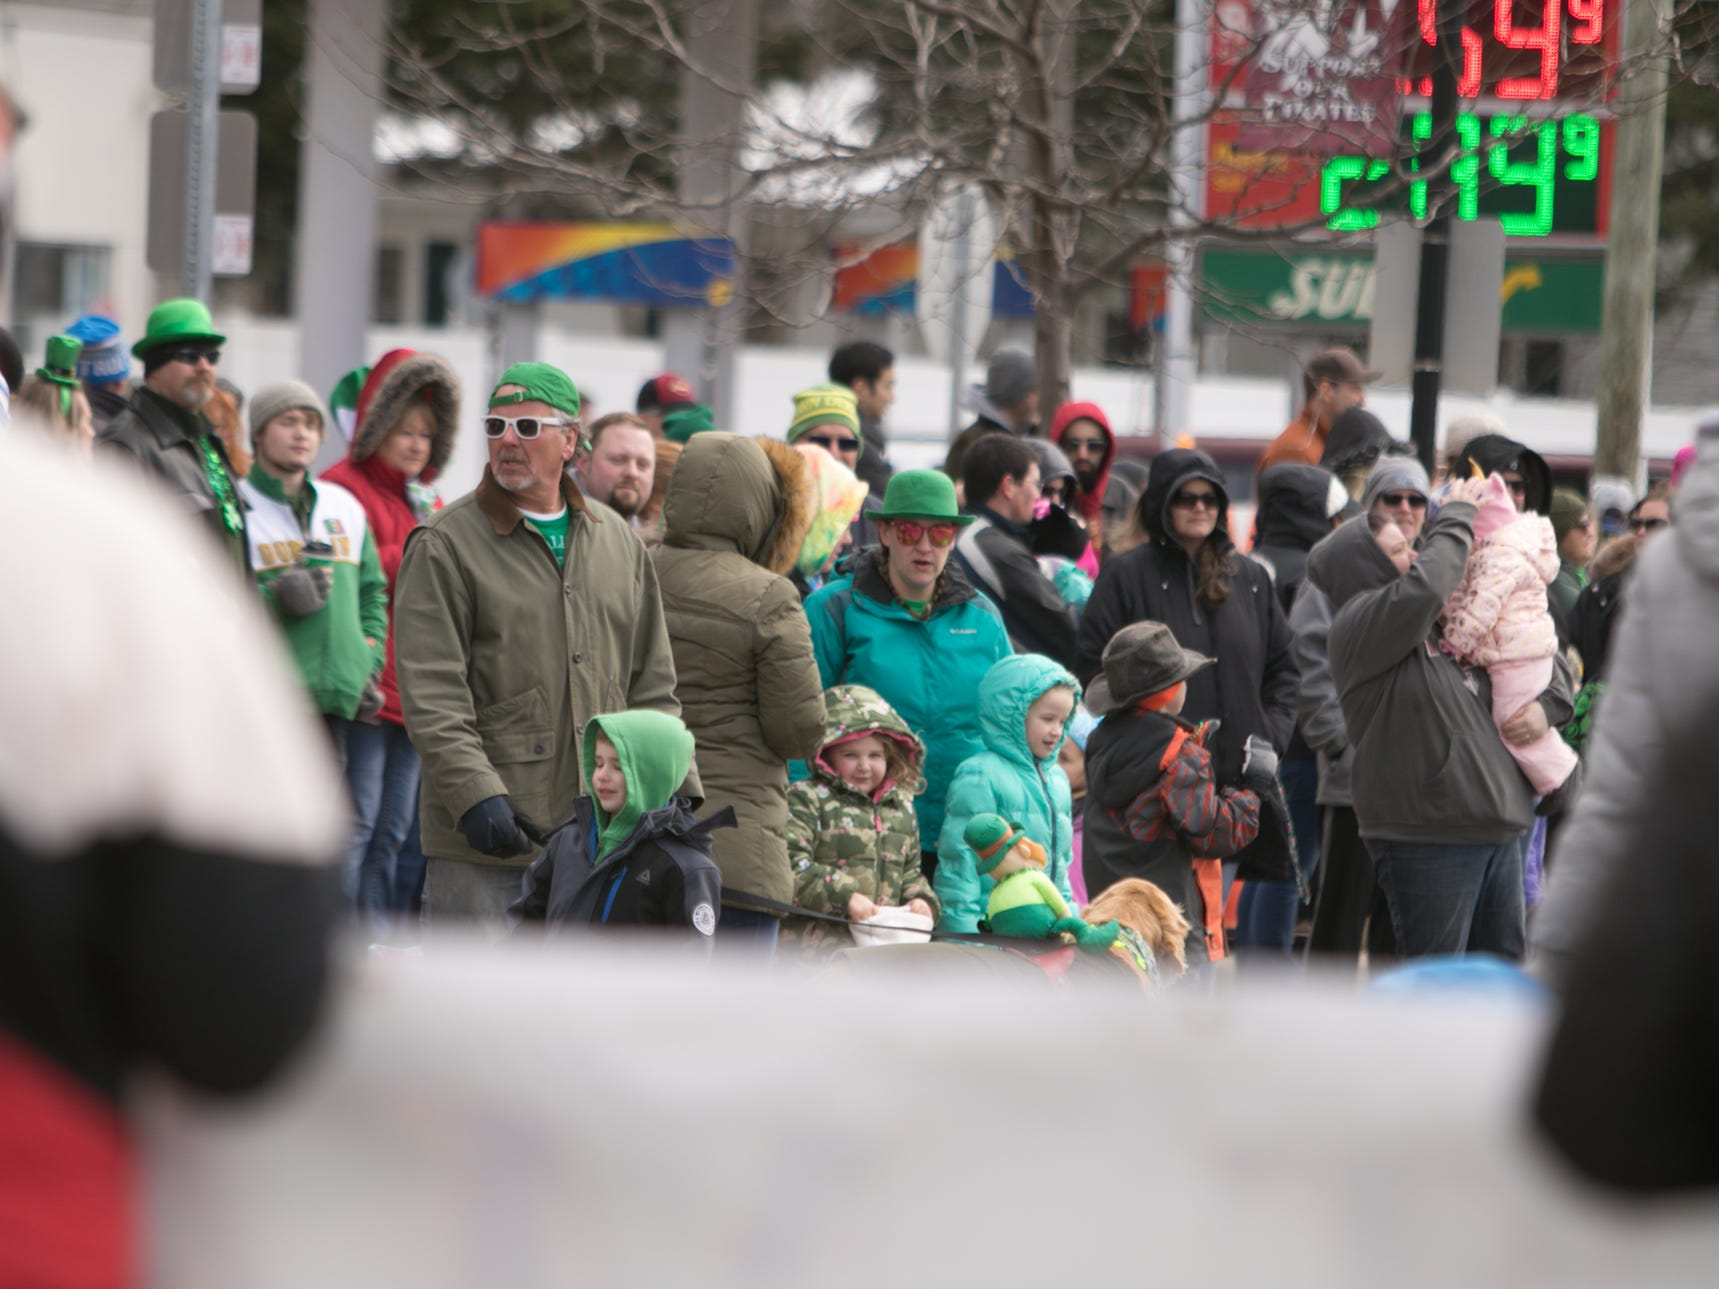 Crowds line Main St. in downtown Pinckney for the annual St. Patrick's Day parade Saturday, March 16, 2019.